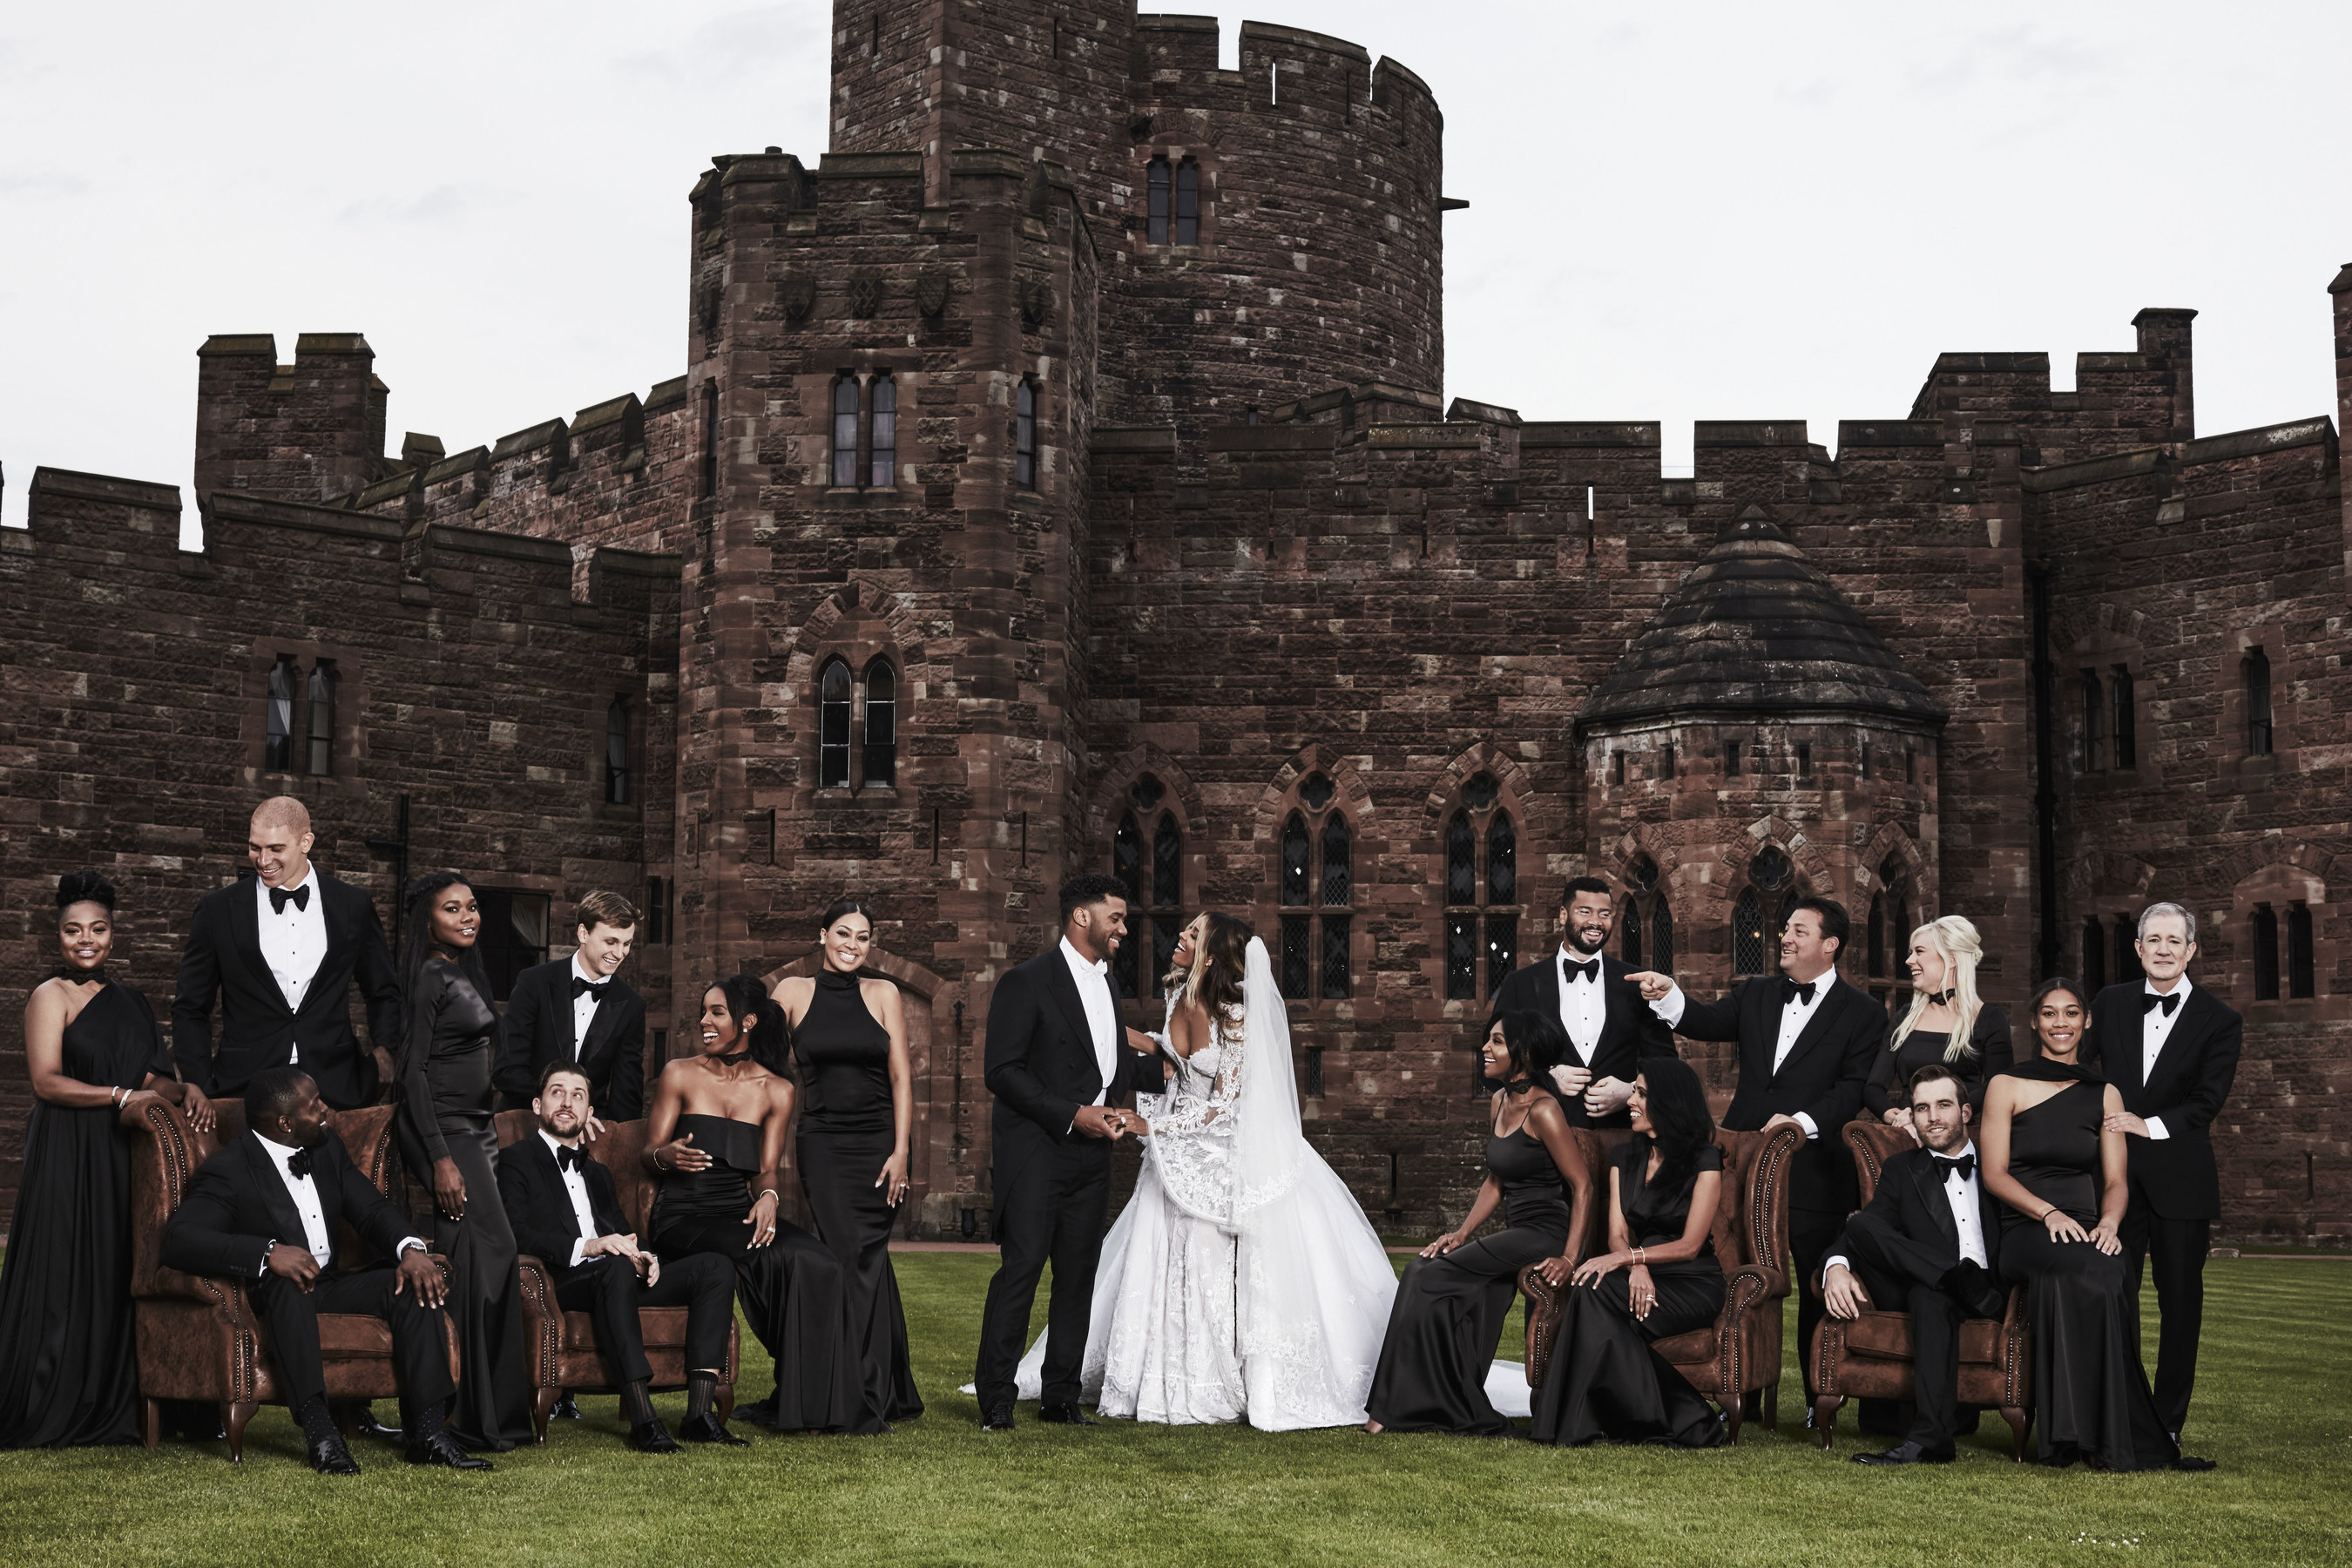 Ciara & Russell Wilson Wedding Party